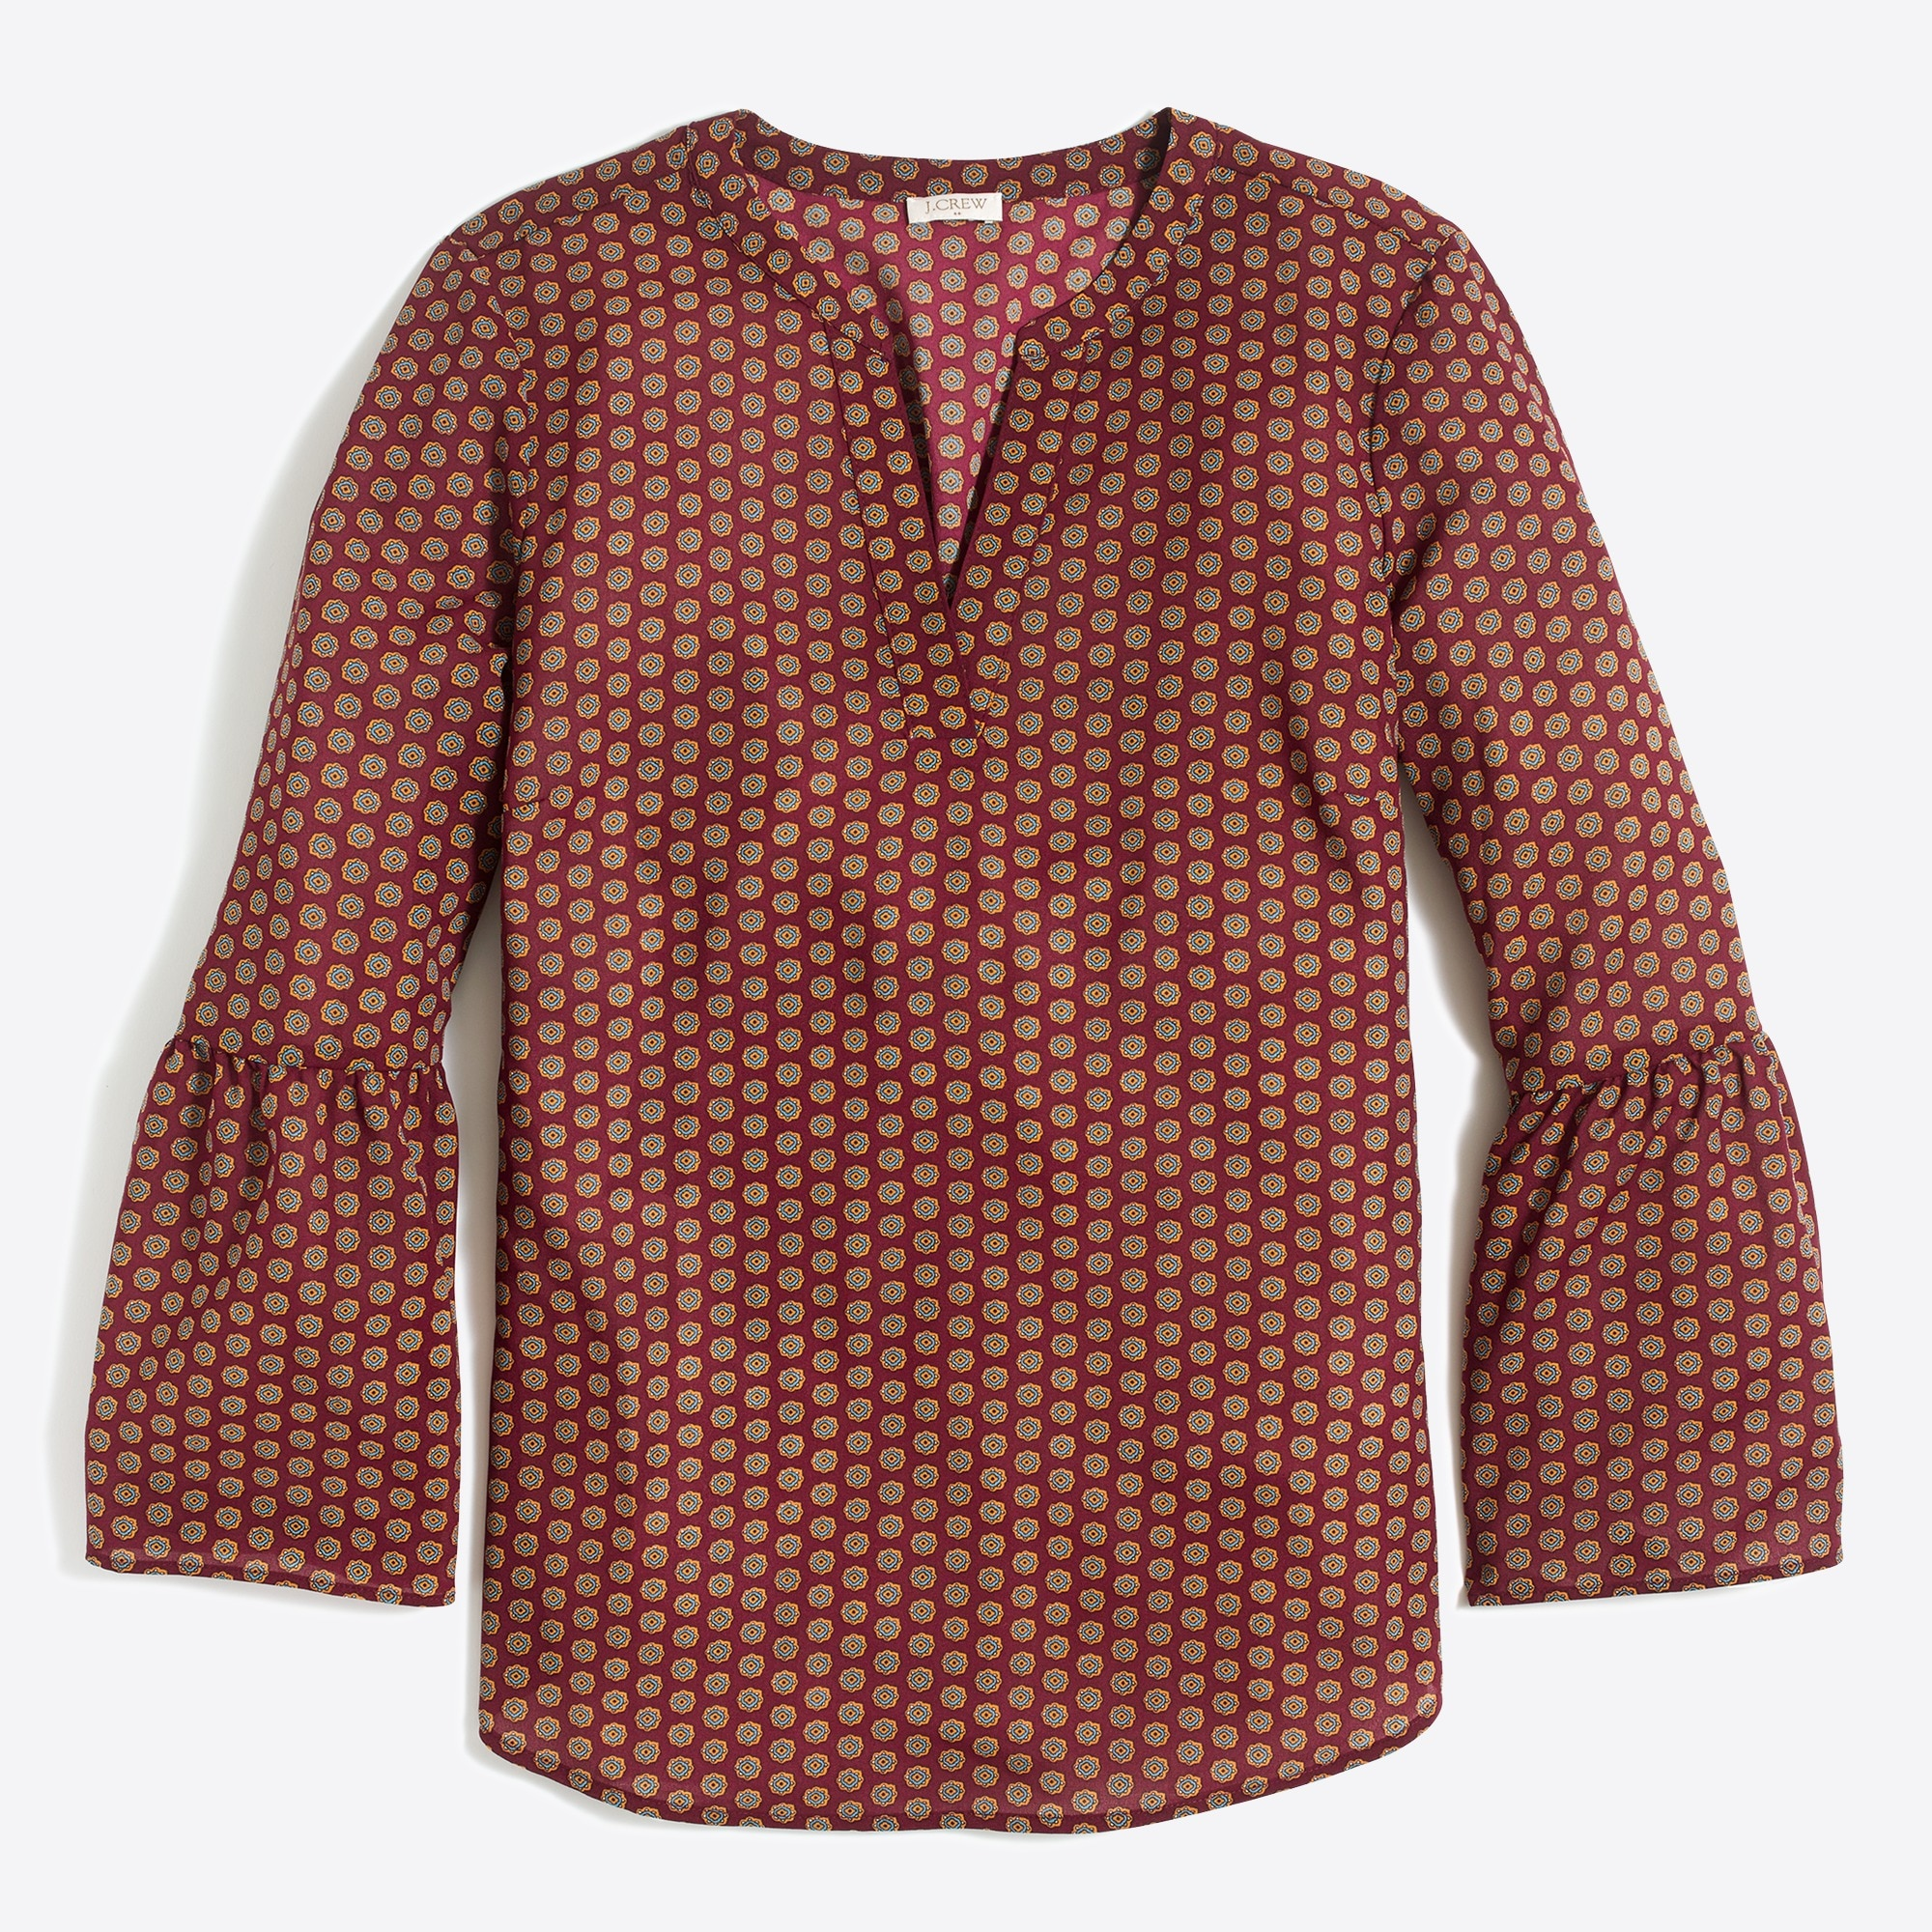 Image 1 for Printed bell-sleeve top